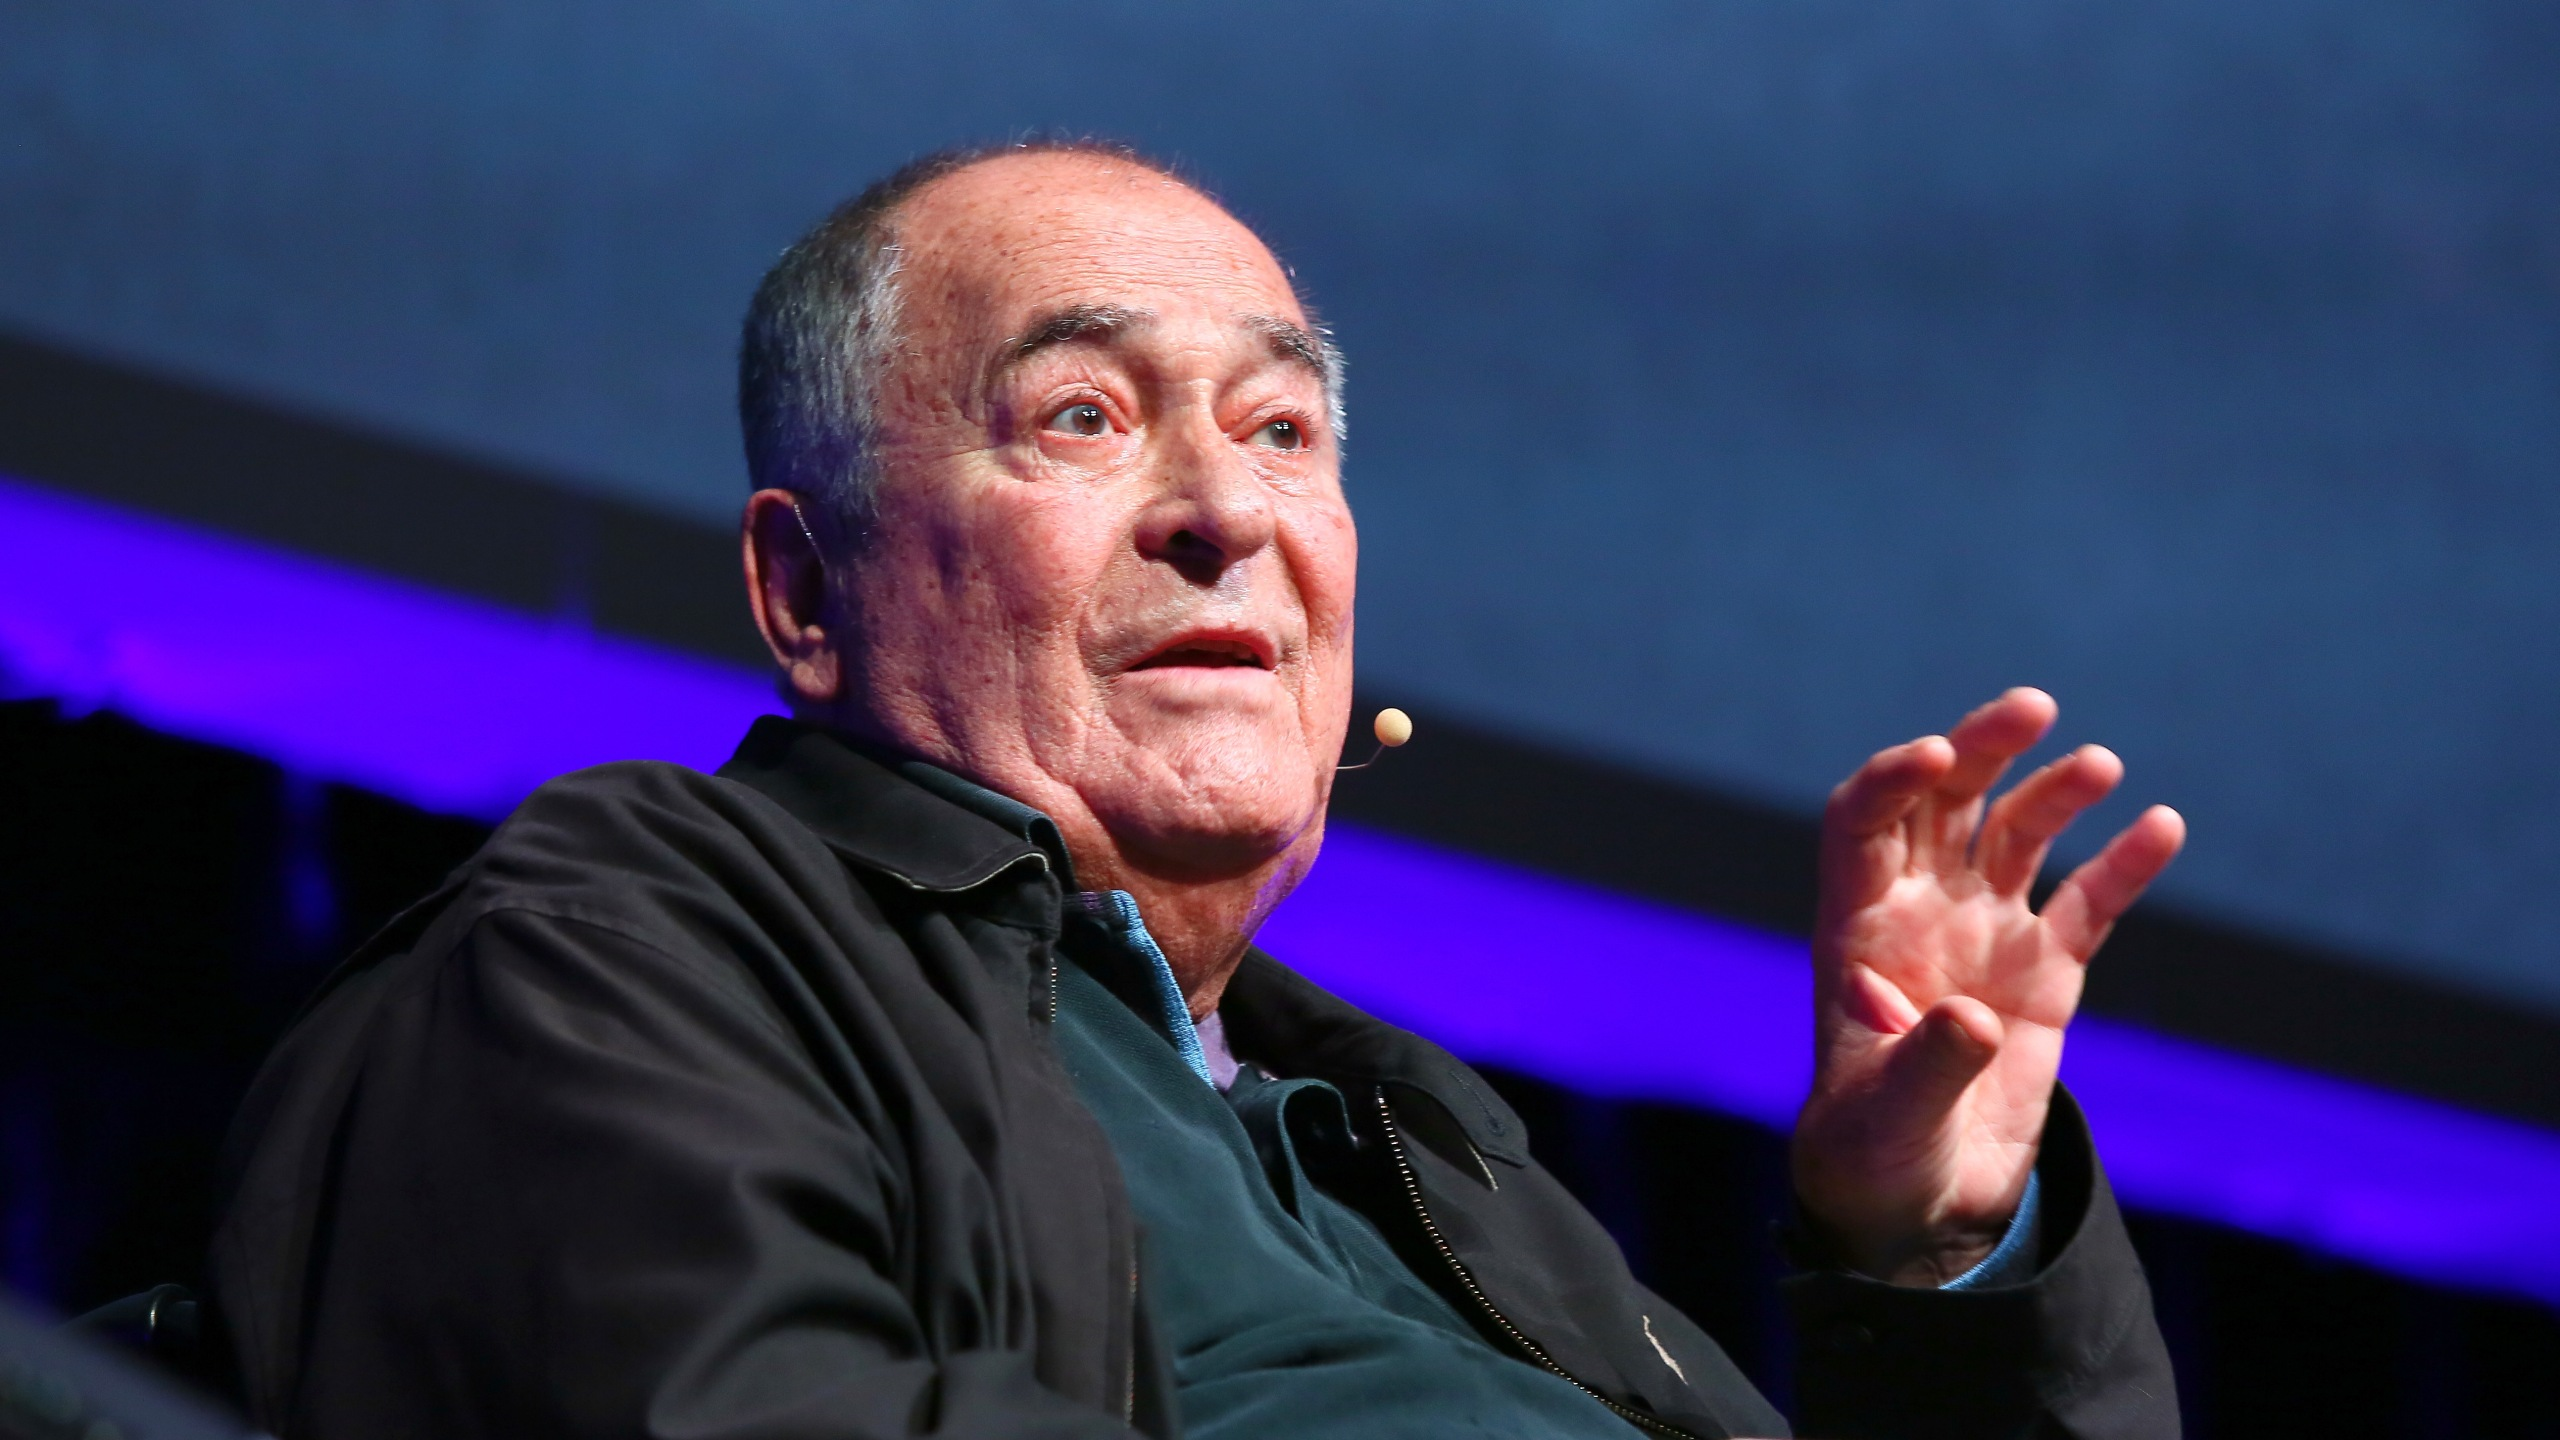 Bernardo Bertolucci meets the audience during the 11th Rome Film Festival at Auditorium Parco Della Musica on Oct. 15, 2016. (Credit: Ernesto Ruscio/Getty Images)